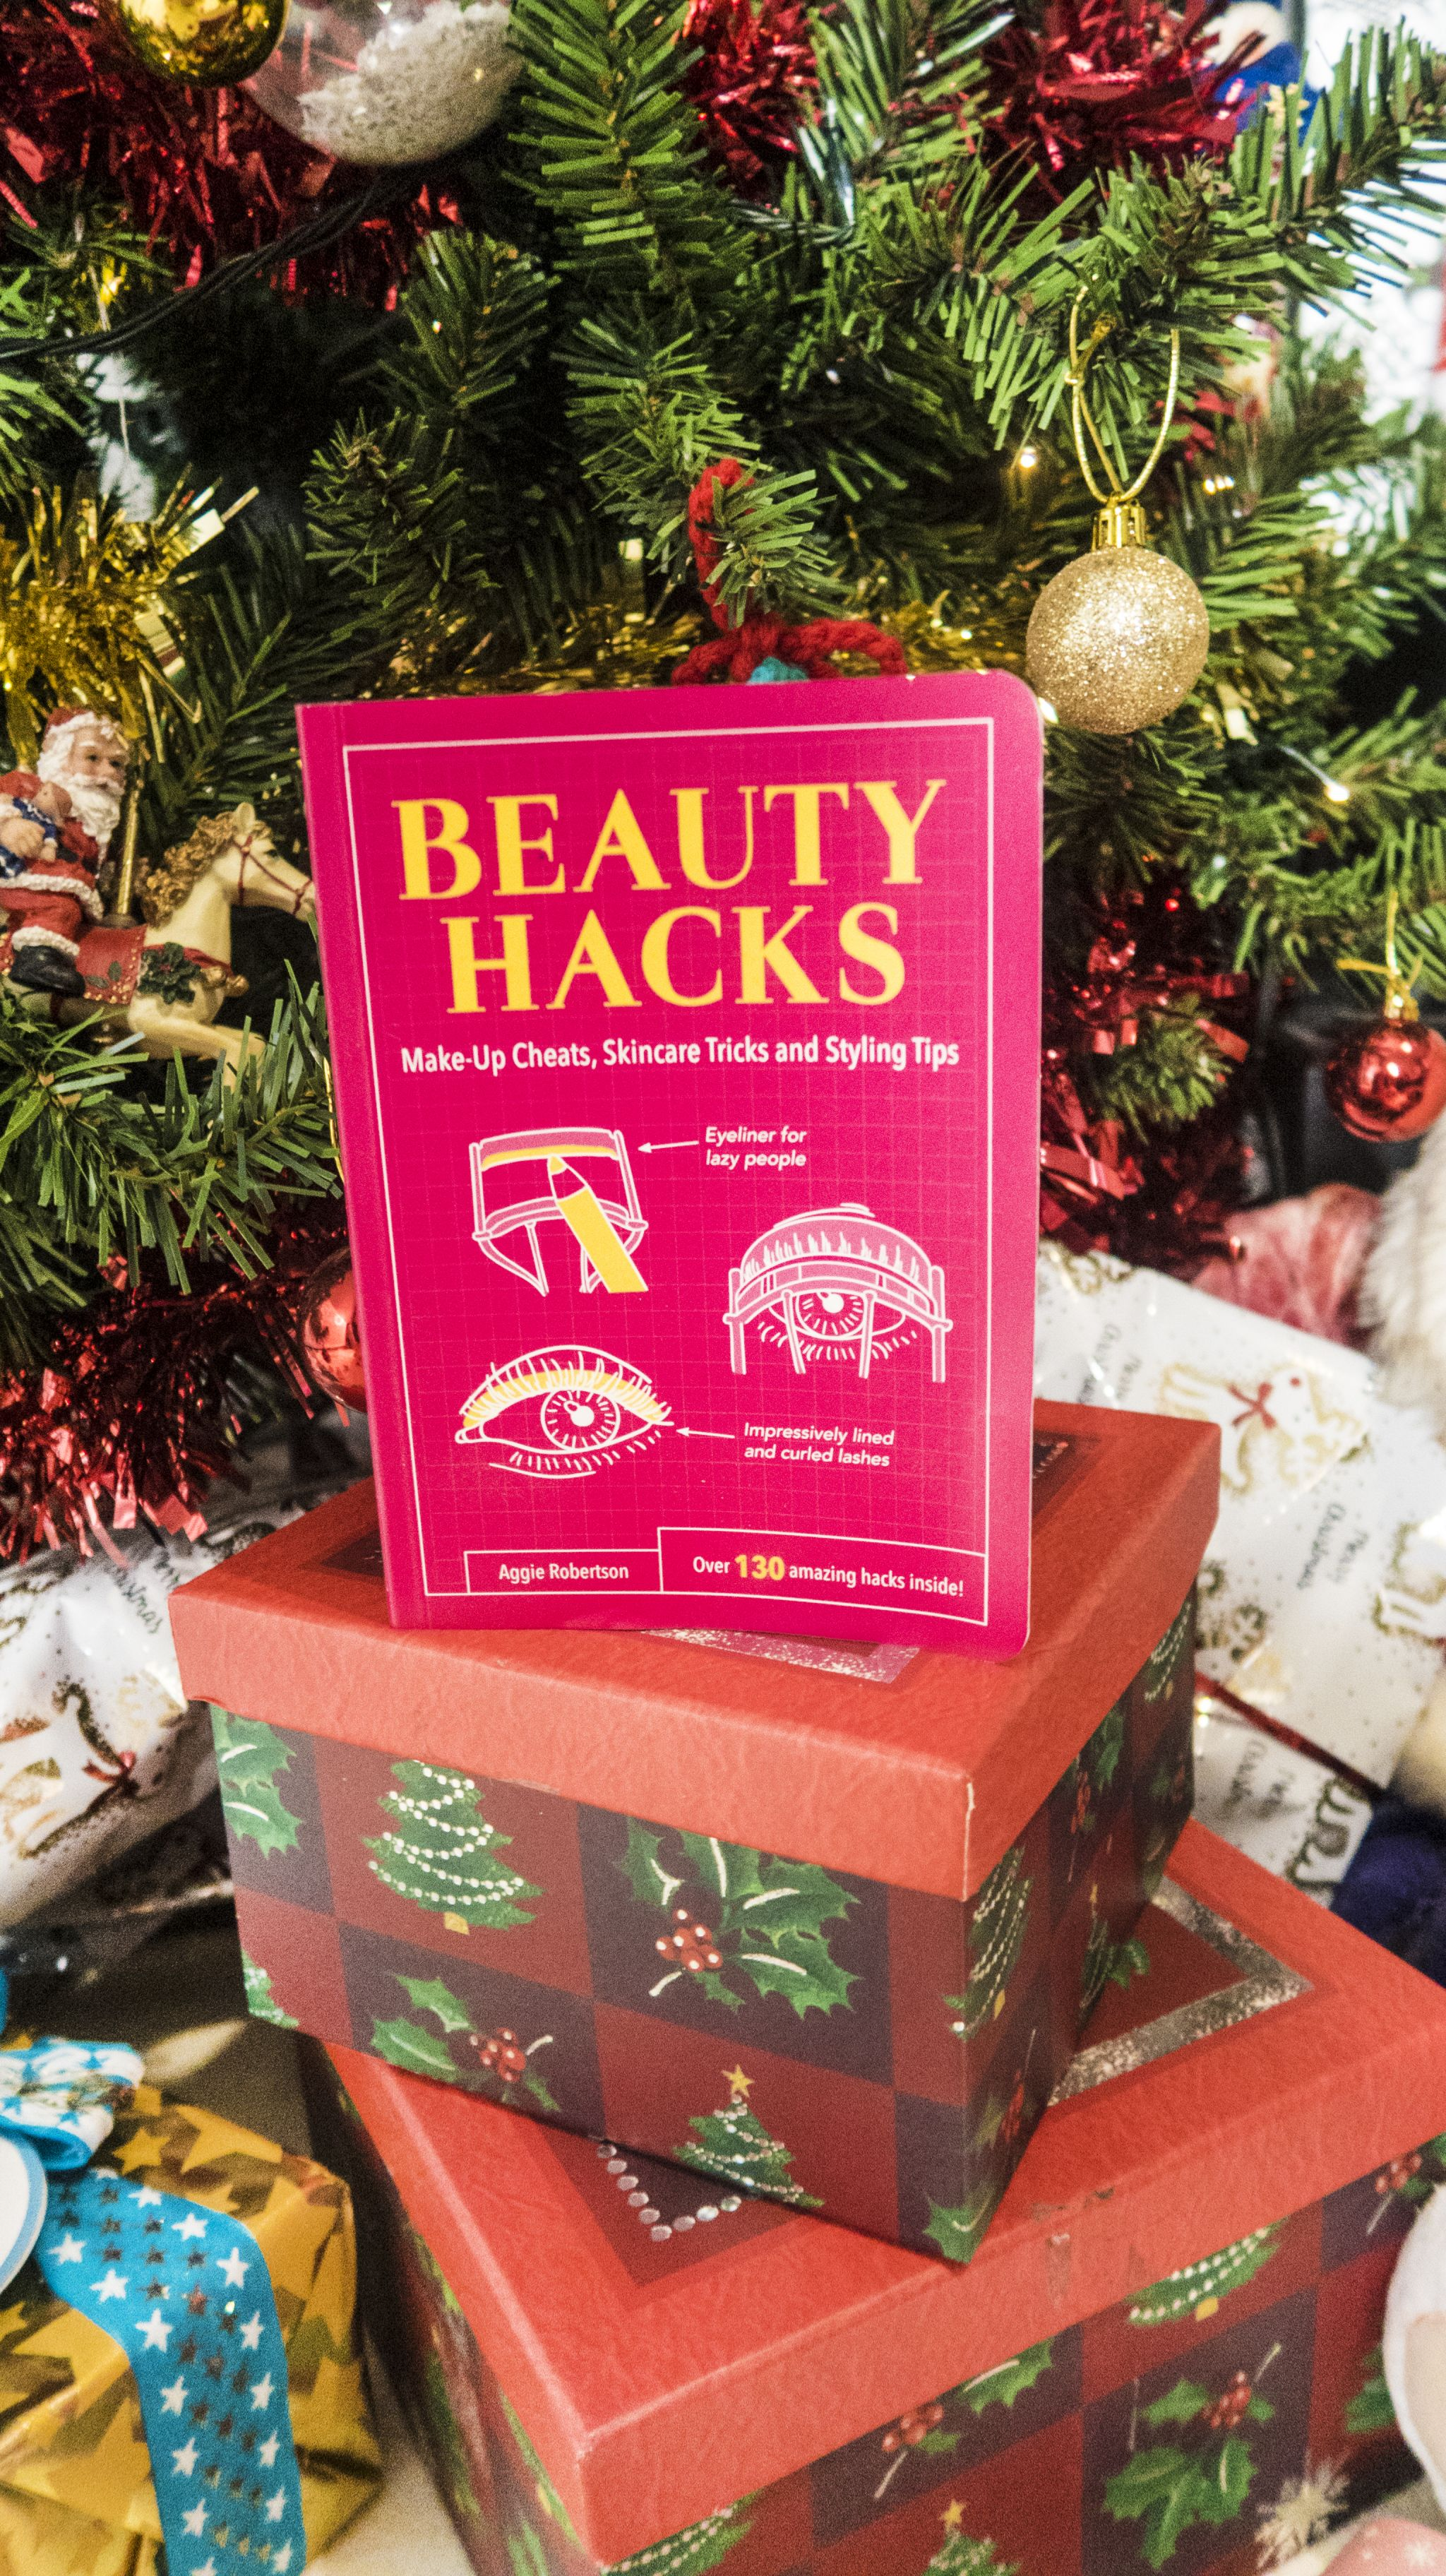 beauty hacks book